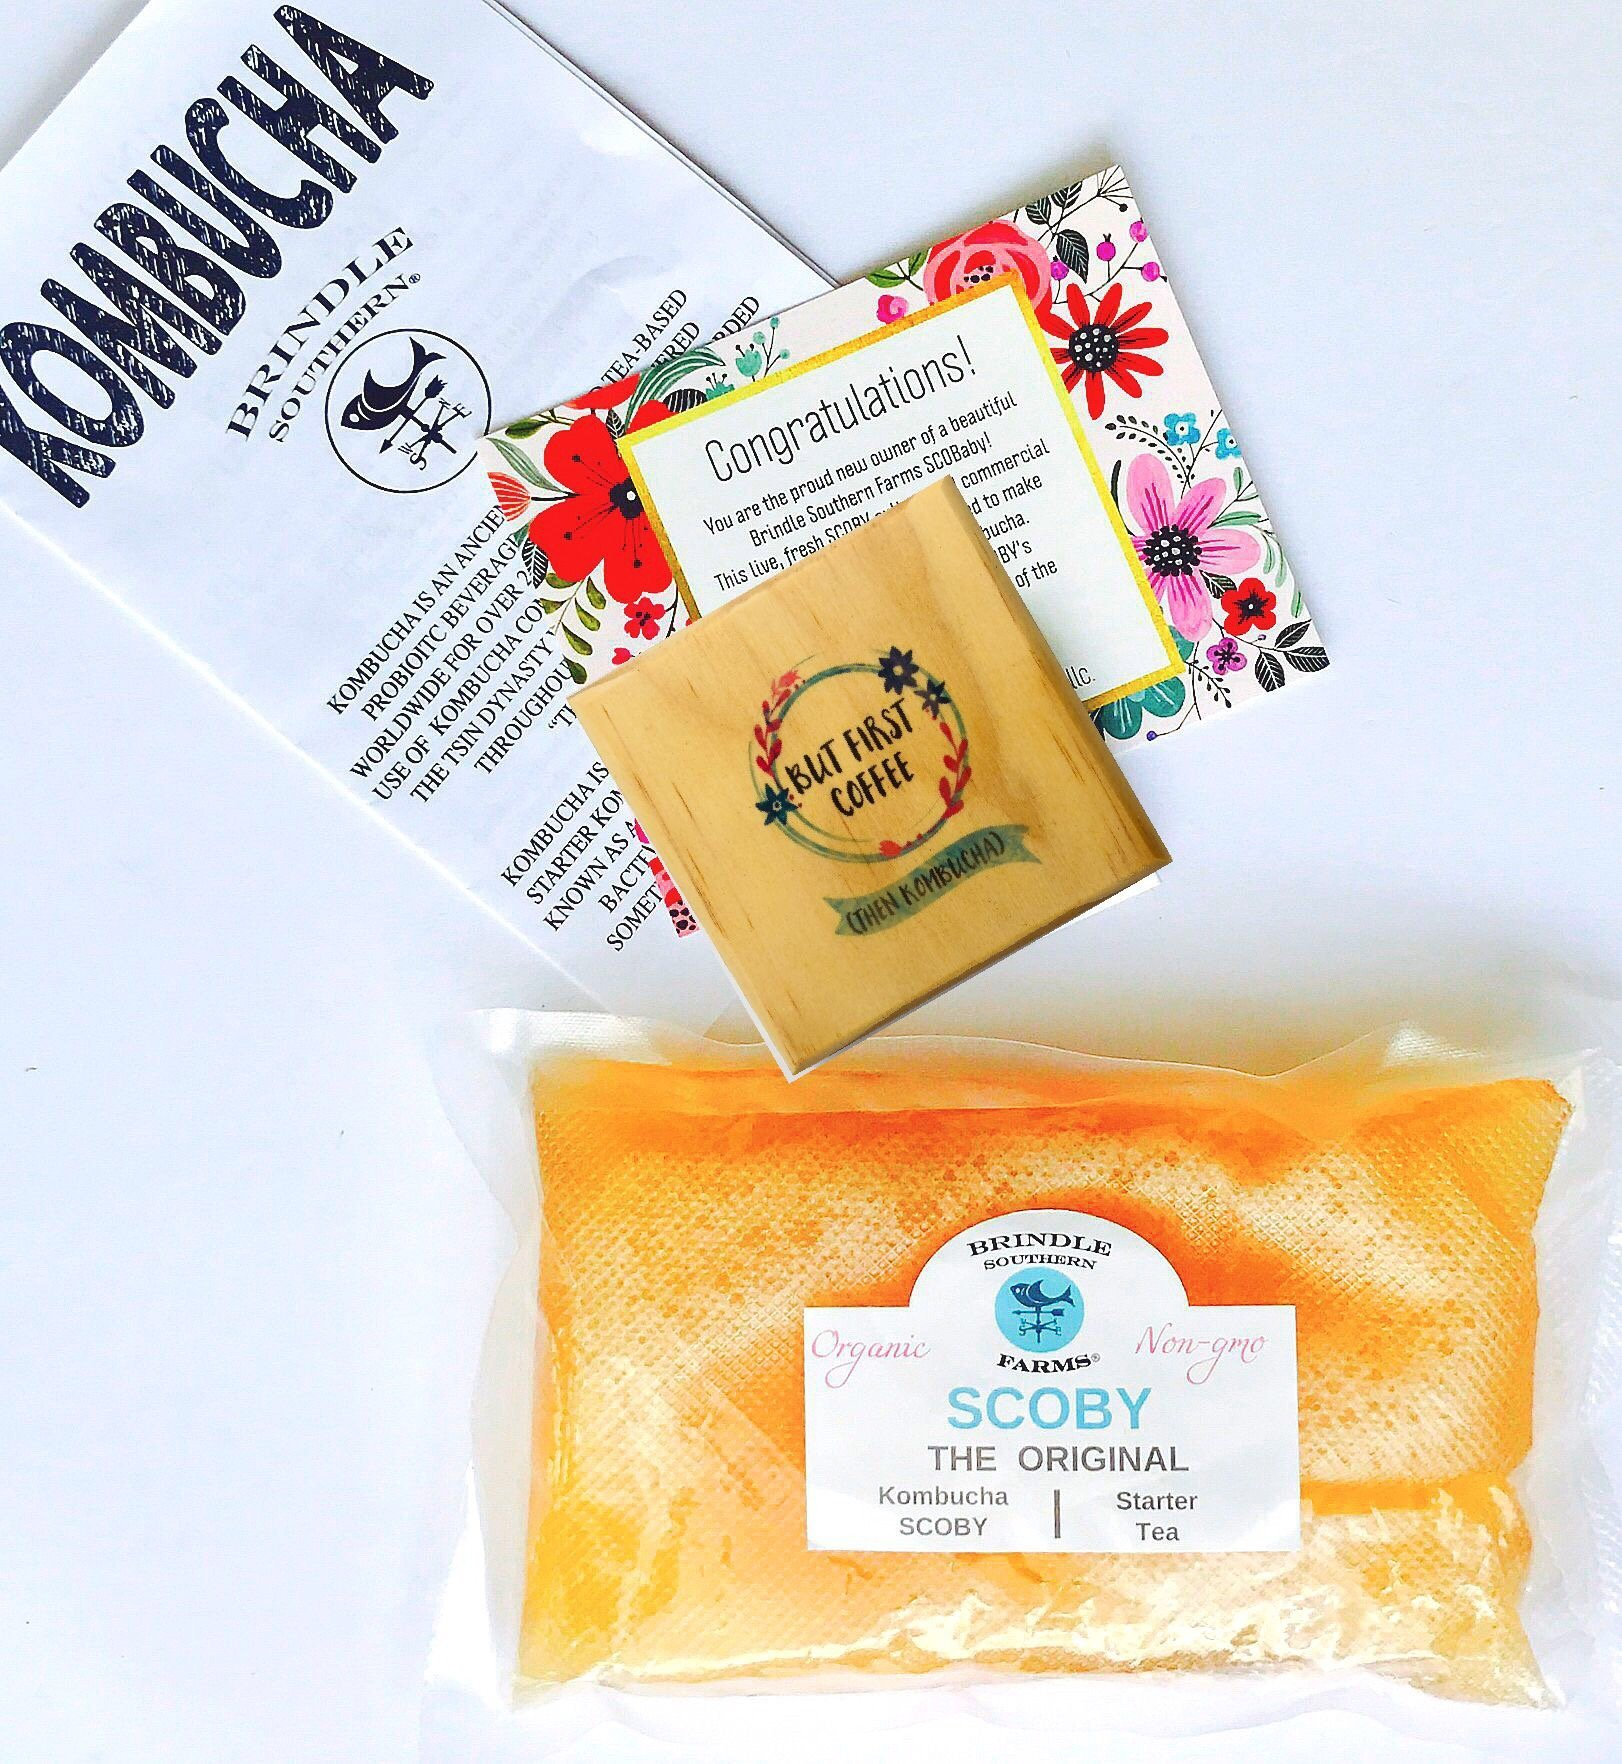 Kombucha Lover's Gift Set: Kombucha SCOBY culture & Wood Coaster But First Coffee, Then Kombucha (Brindle Southern Farms